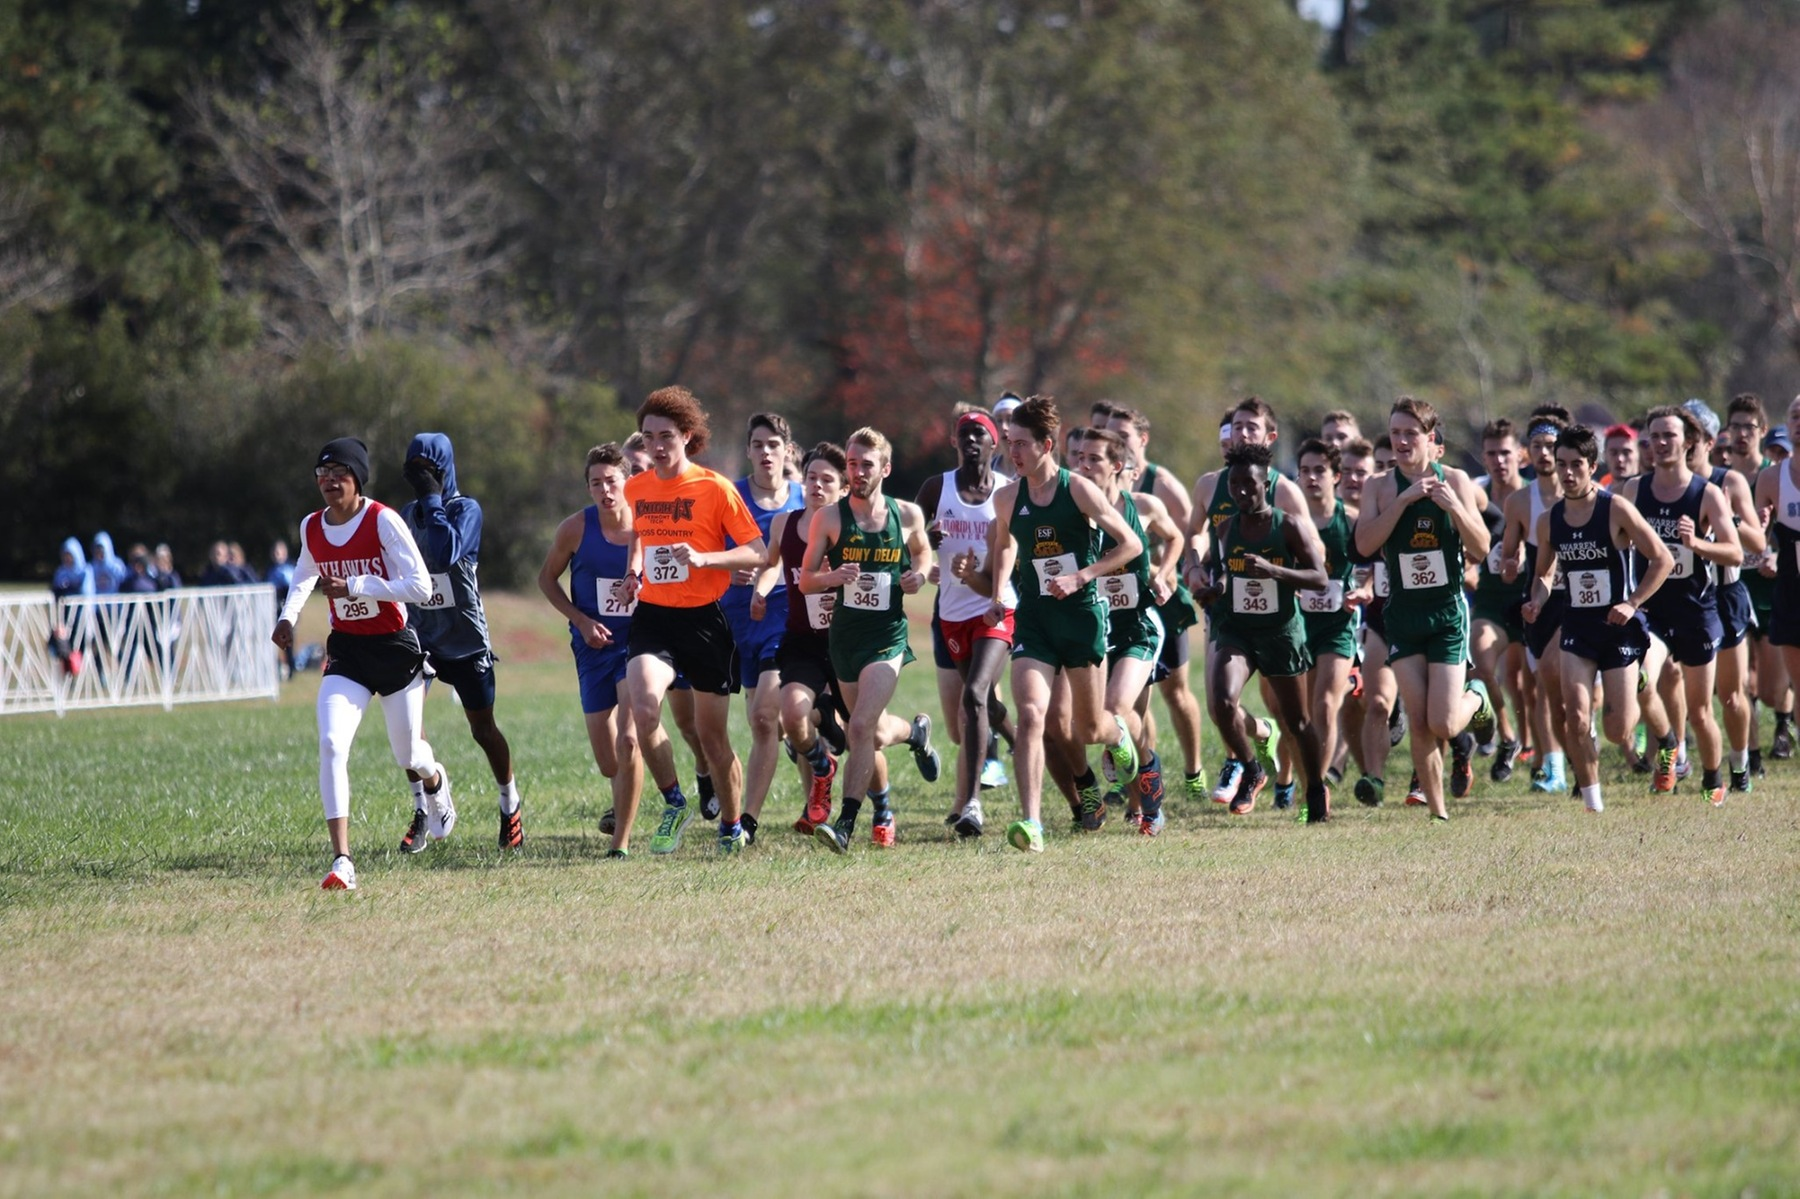 Men's Cross Country finish season with 11th place at USCAA Nationals